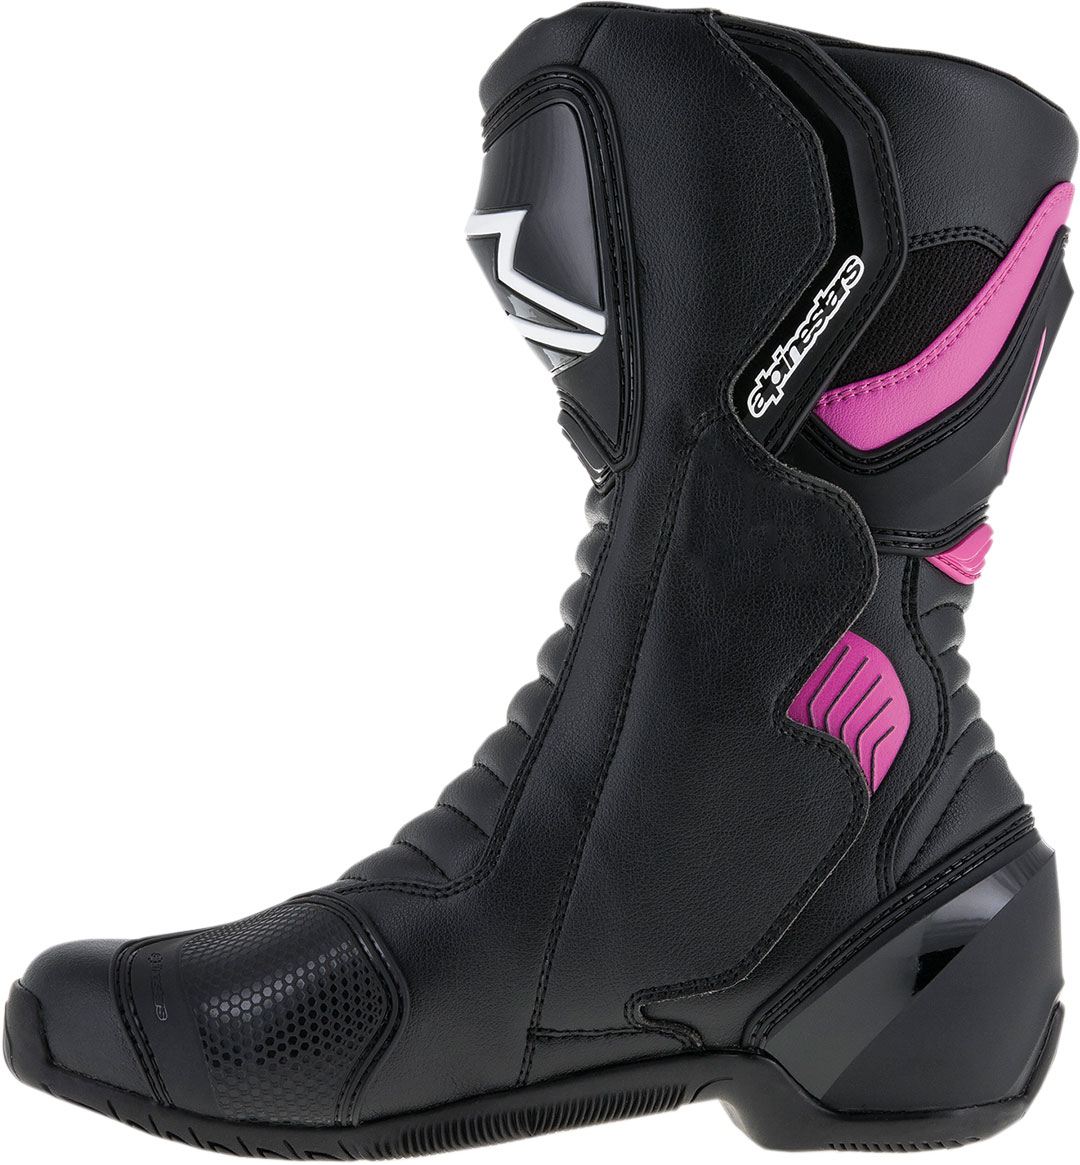 Black//Pink 40 Alpinestars Stella S-MX 1R Vented Womens Street Motorcycle Shoes